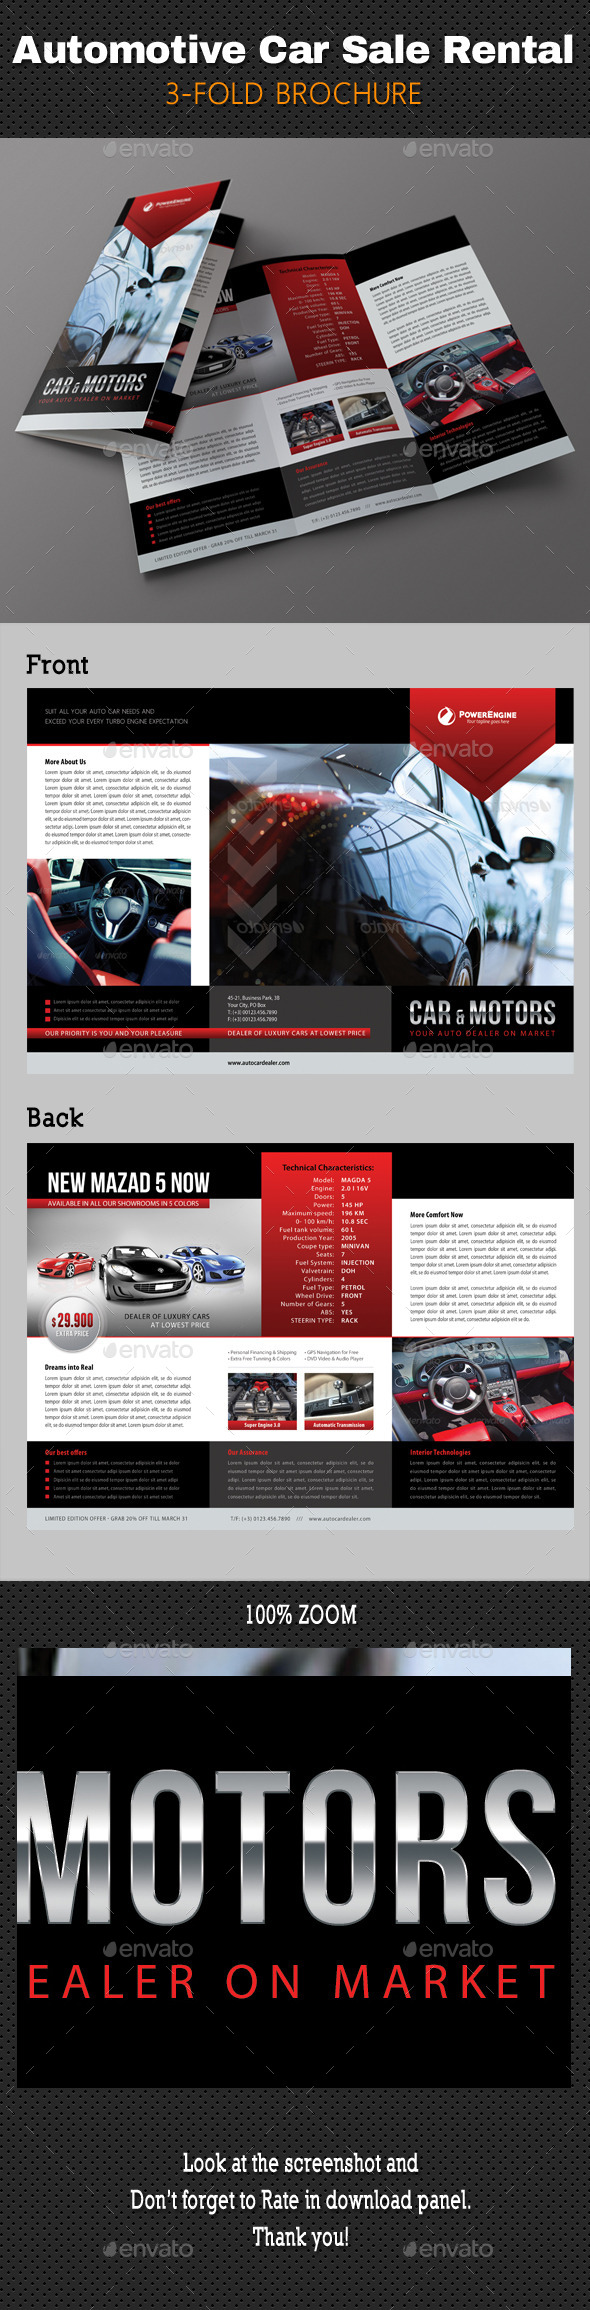 GraphicRiver Automotive Car Sale Rental 3-Fold Brochure 02 10949503